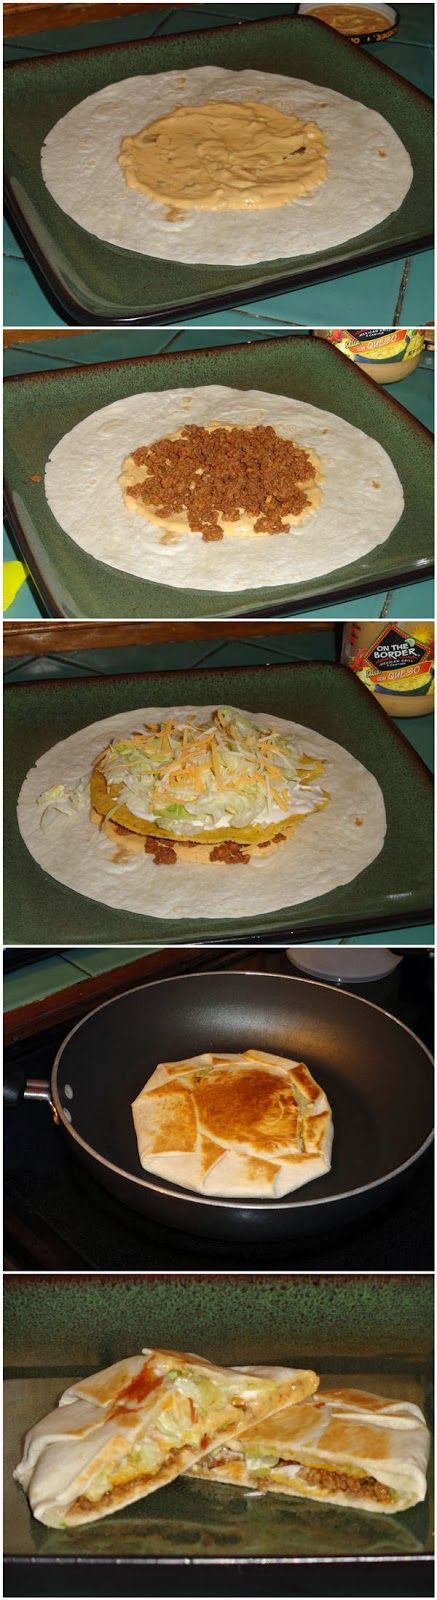 Lol we'll have to try this when we're craving Taco Bell.